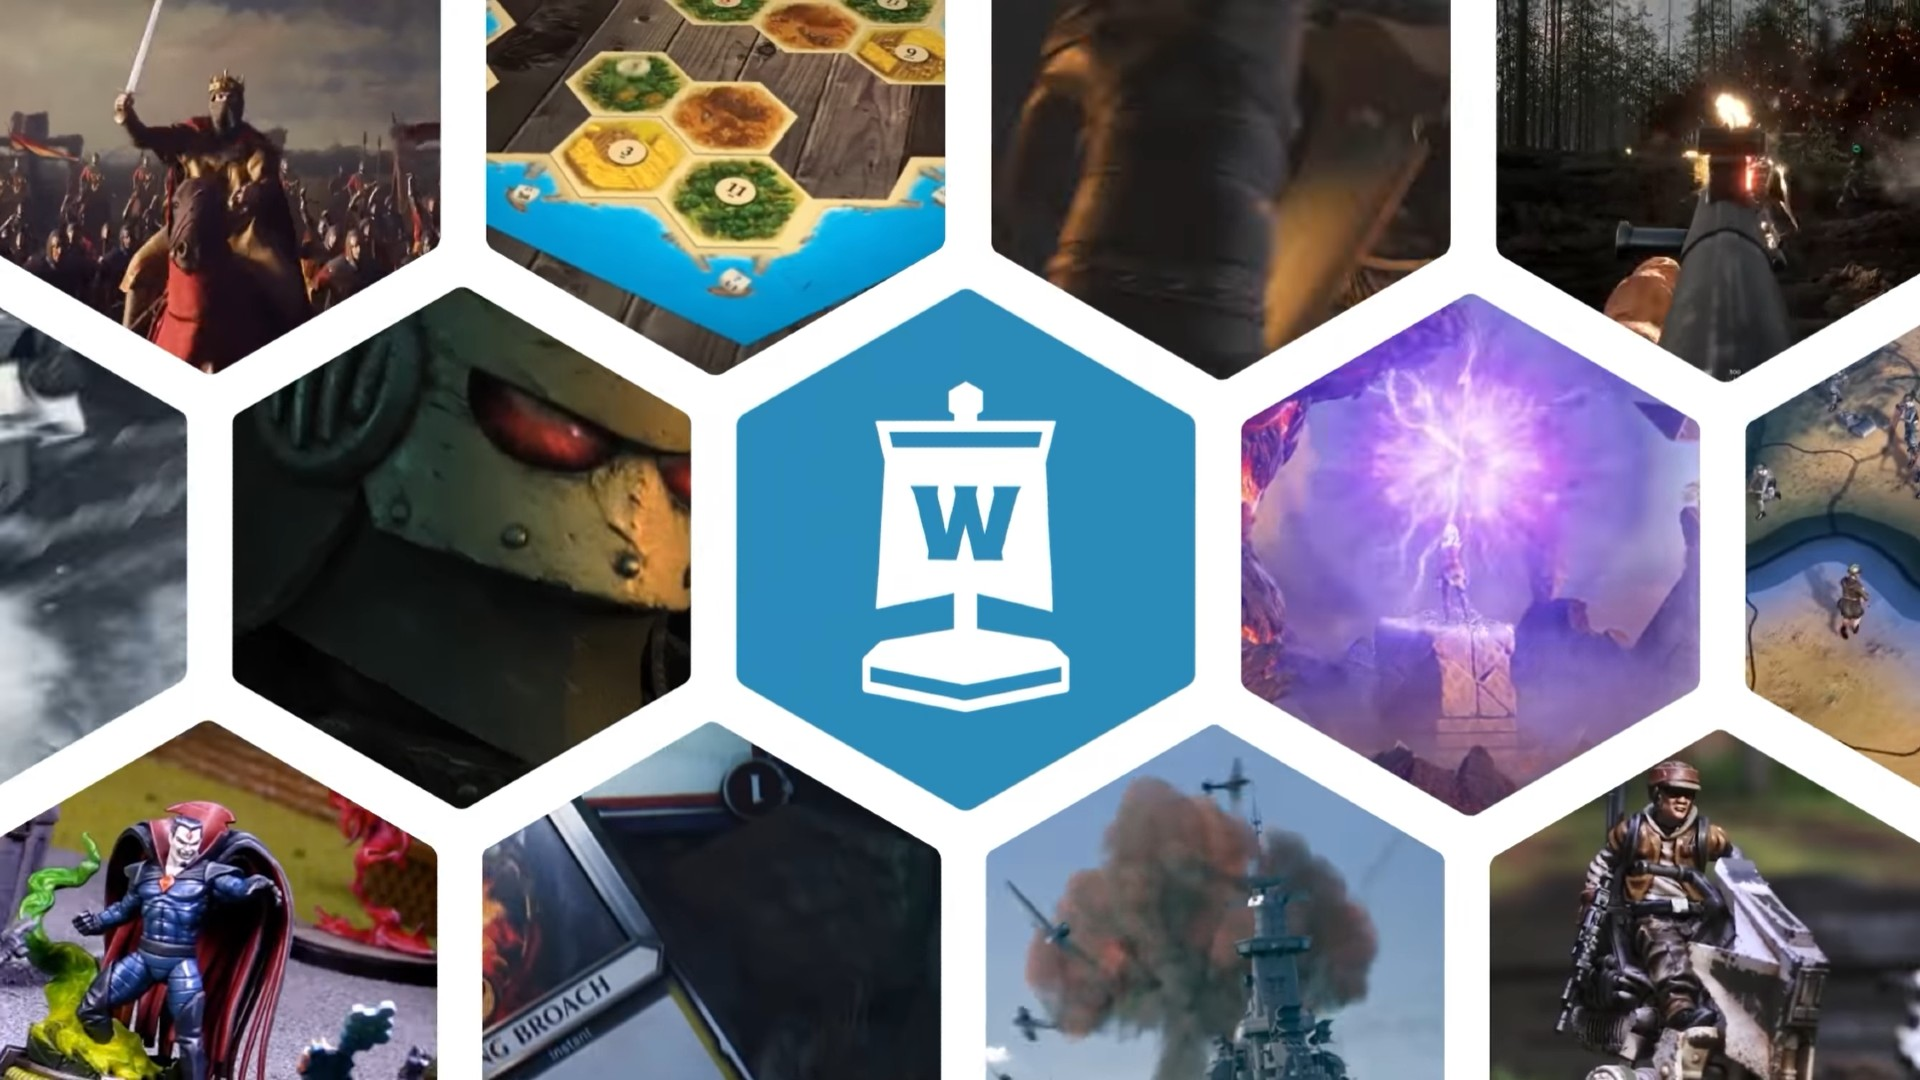 a custom Wargamer brand graphic showing the Wargamer logo and hex-shaped screenshots of various digital and tabletop games